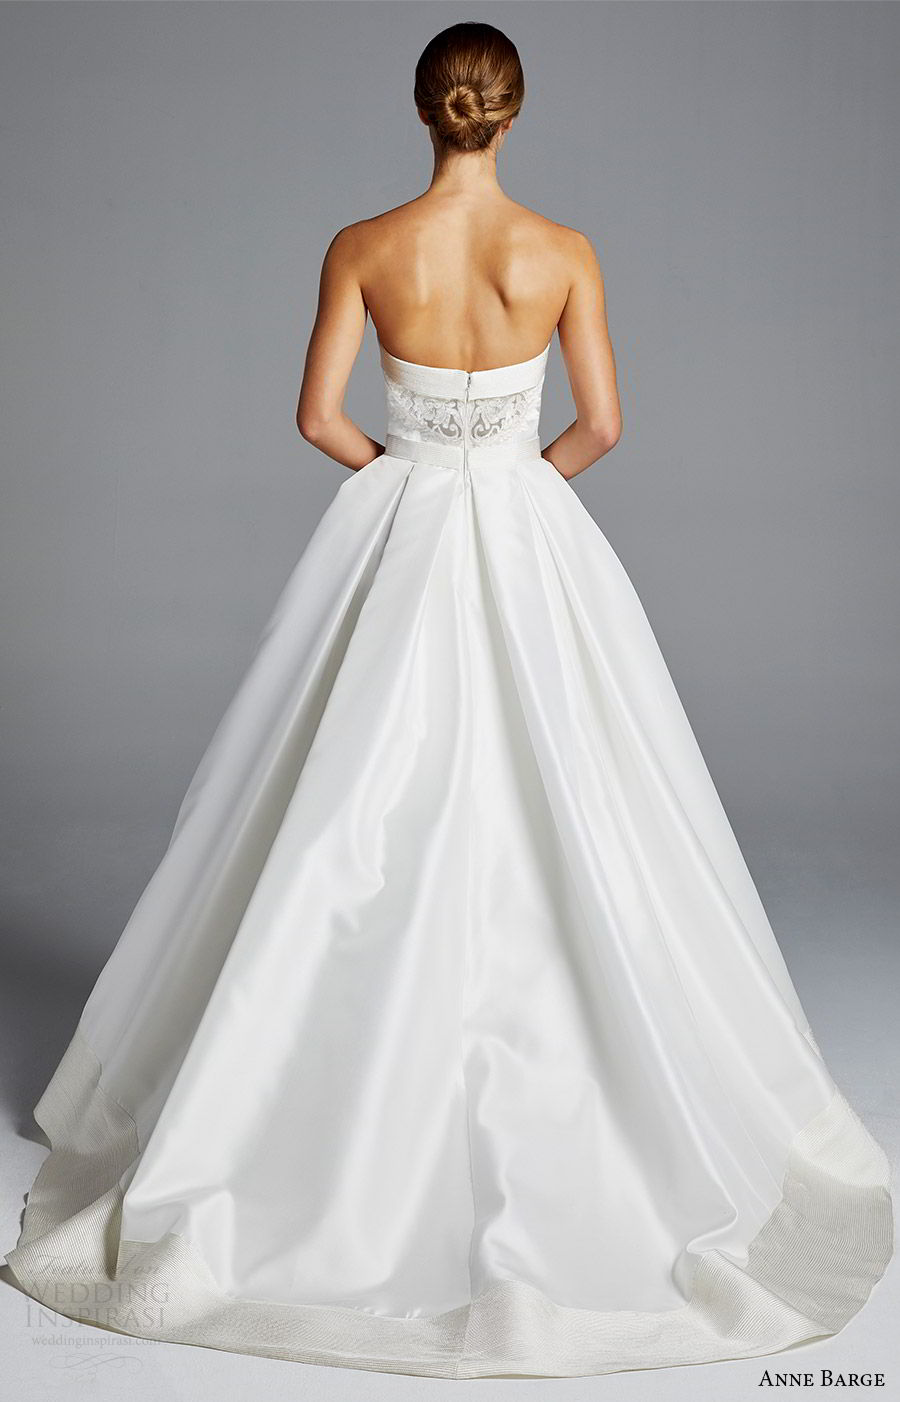 anne barge bridal spring 2019 strapless straigh across a line minimally embellished ball gown wedding dress (hutton) bv sweep train chic elegant